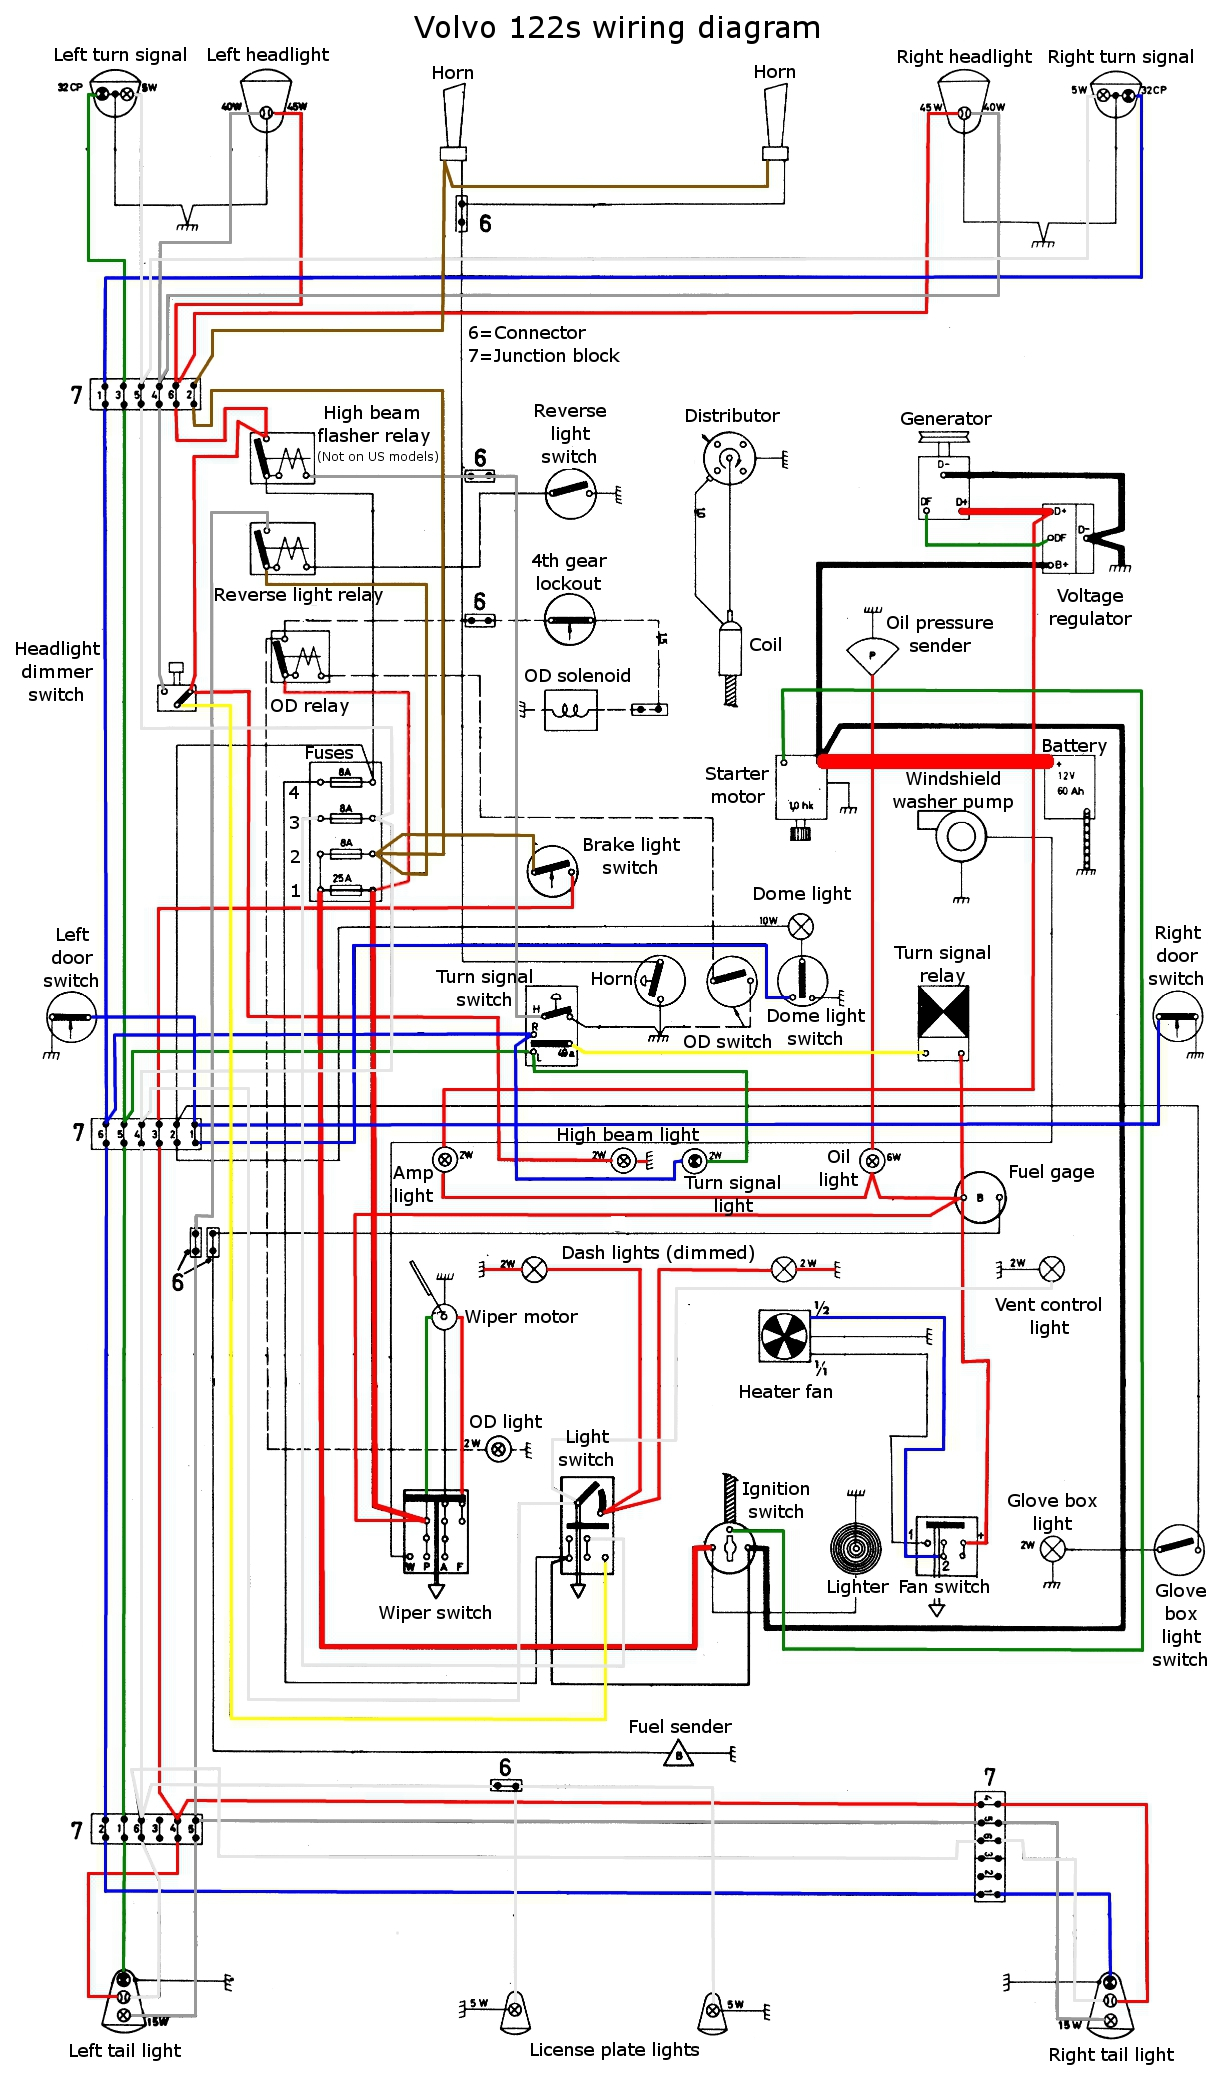 122 wiring diagram color wiring gremlins volvo xc70 wiring diagram at crackthecode.co